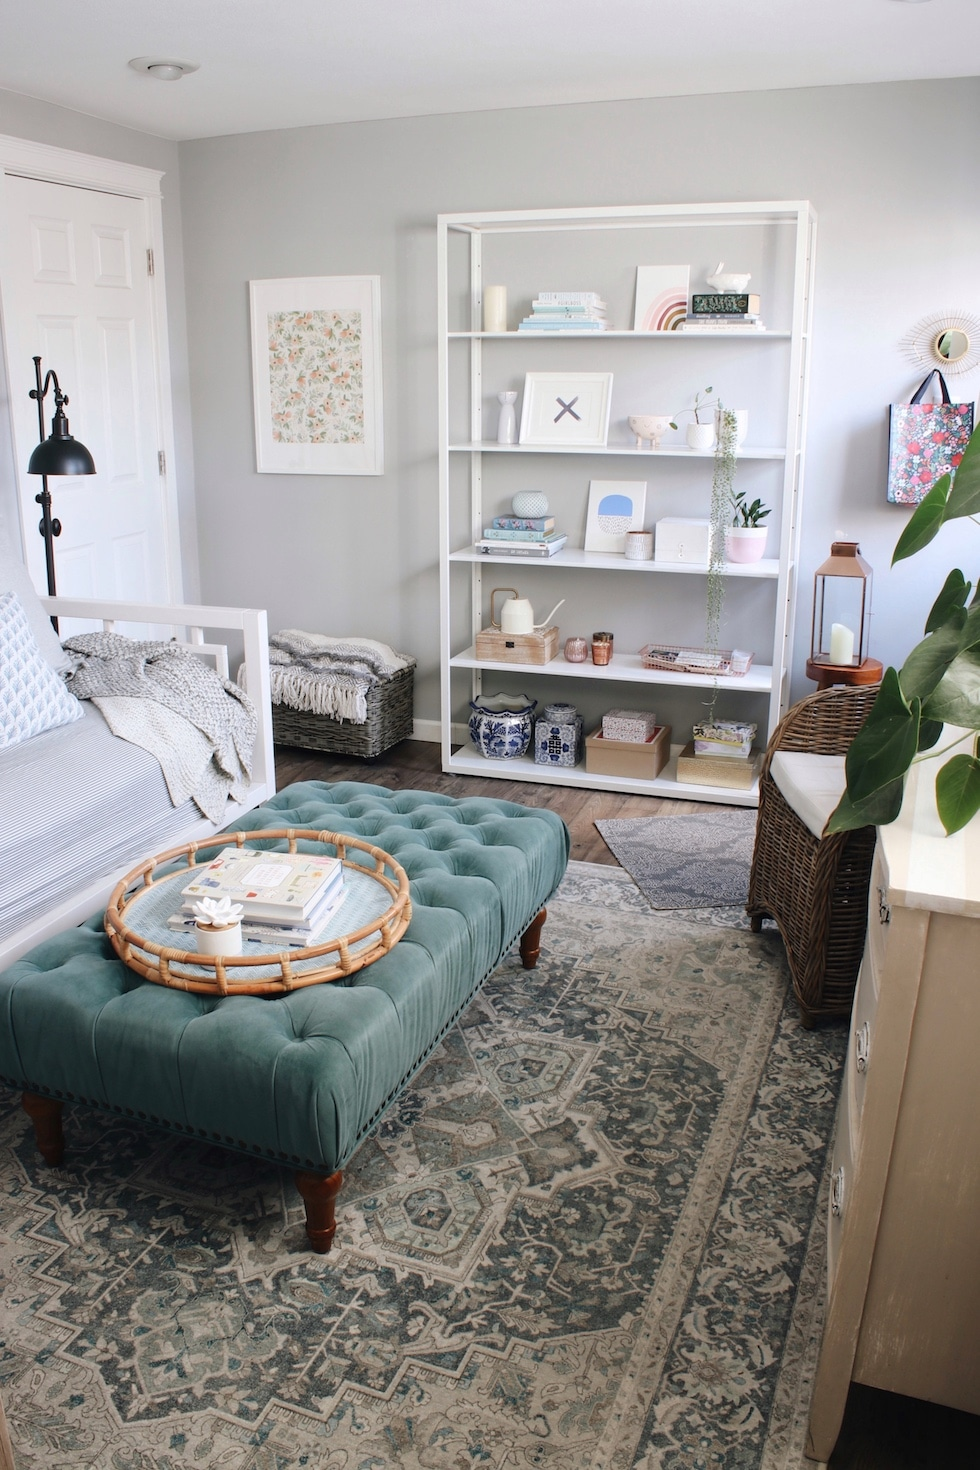 The Inspired Room | Voted Readers' Favorite Top Decorating Blog Better Homes  and Gardens, Decorating Ideas, How to Organize, How to Decorate, Interior  Design Blog